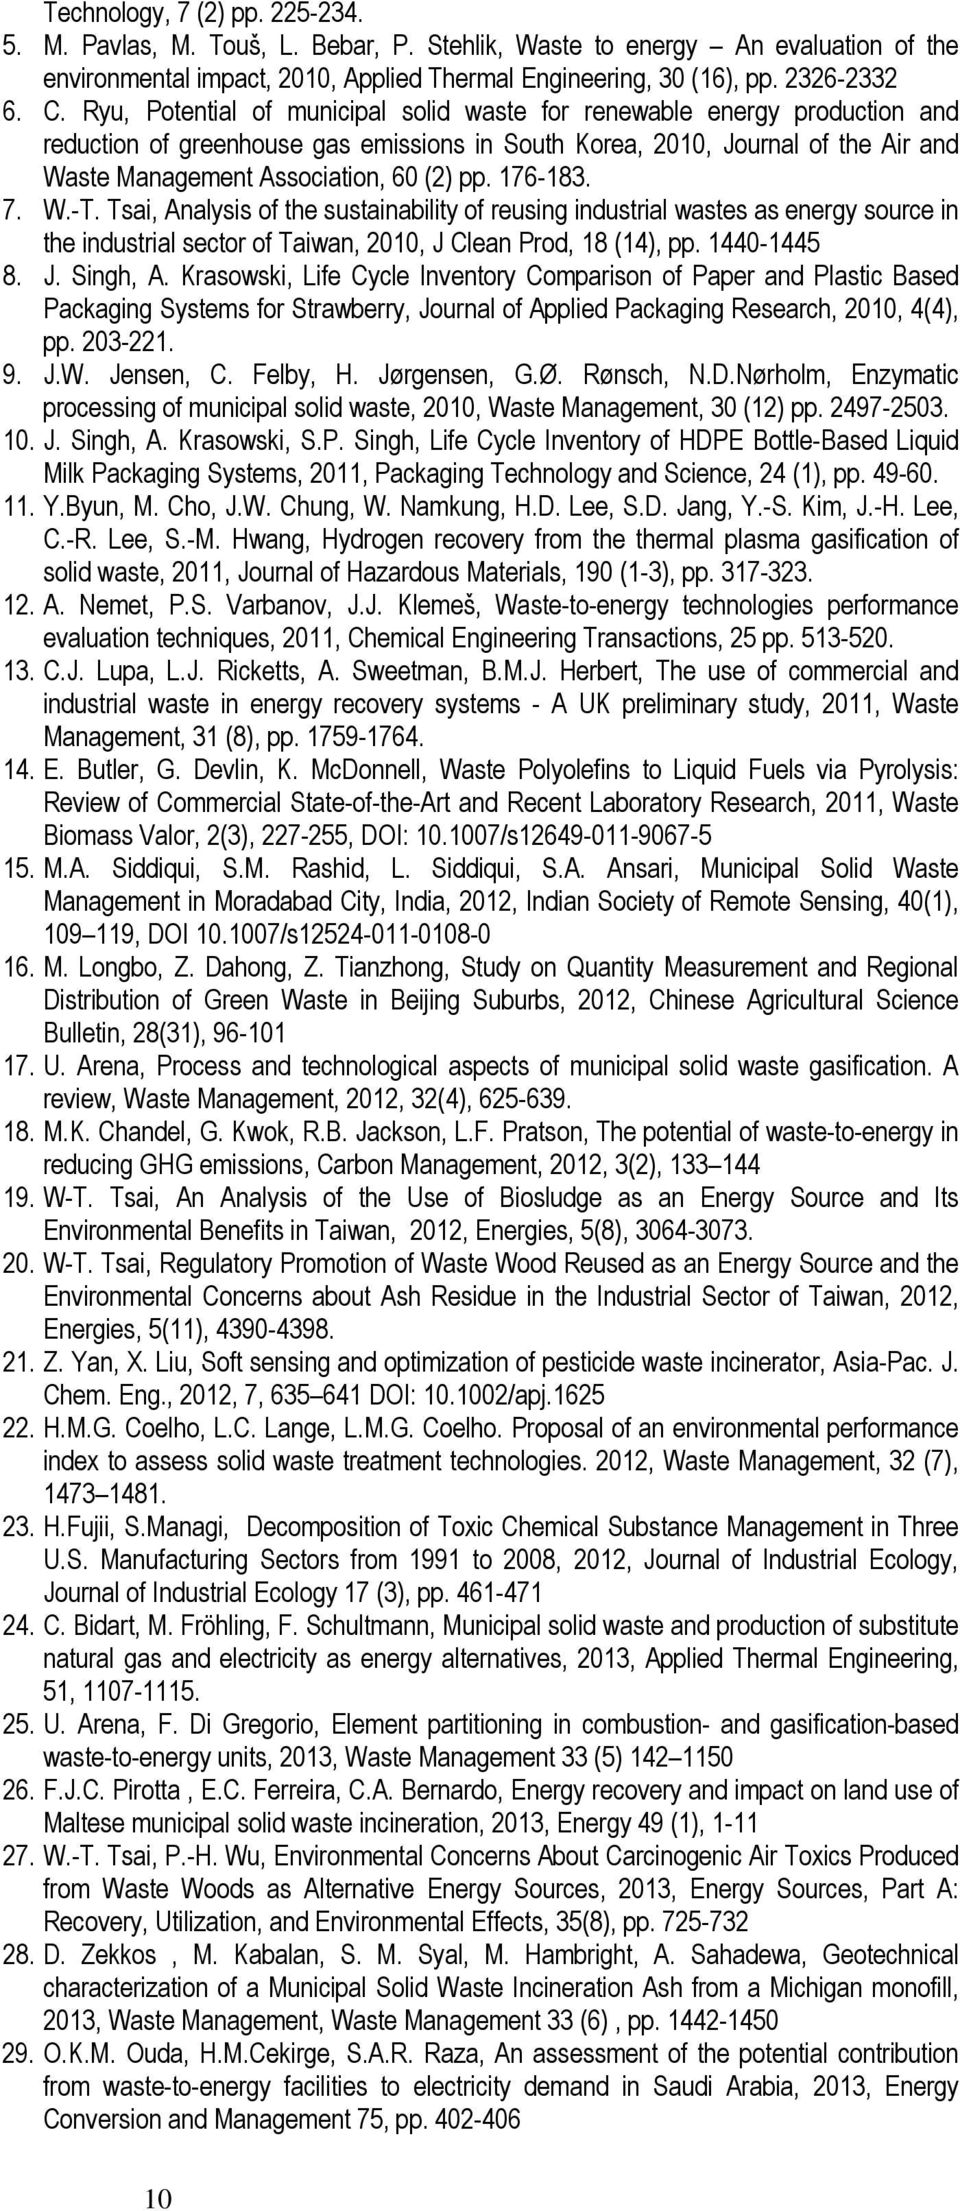 176-183. 7. W.-T. Tsai, Analysis of the sustainability of reusing industrial wastes as energy source in the industrial sector of Taiwan, 2010, J Clean Prod, 18 (14), pp. 1440-1445 8. J. Singh, A.